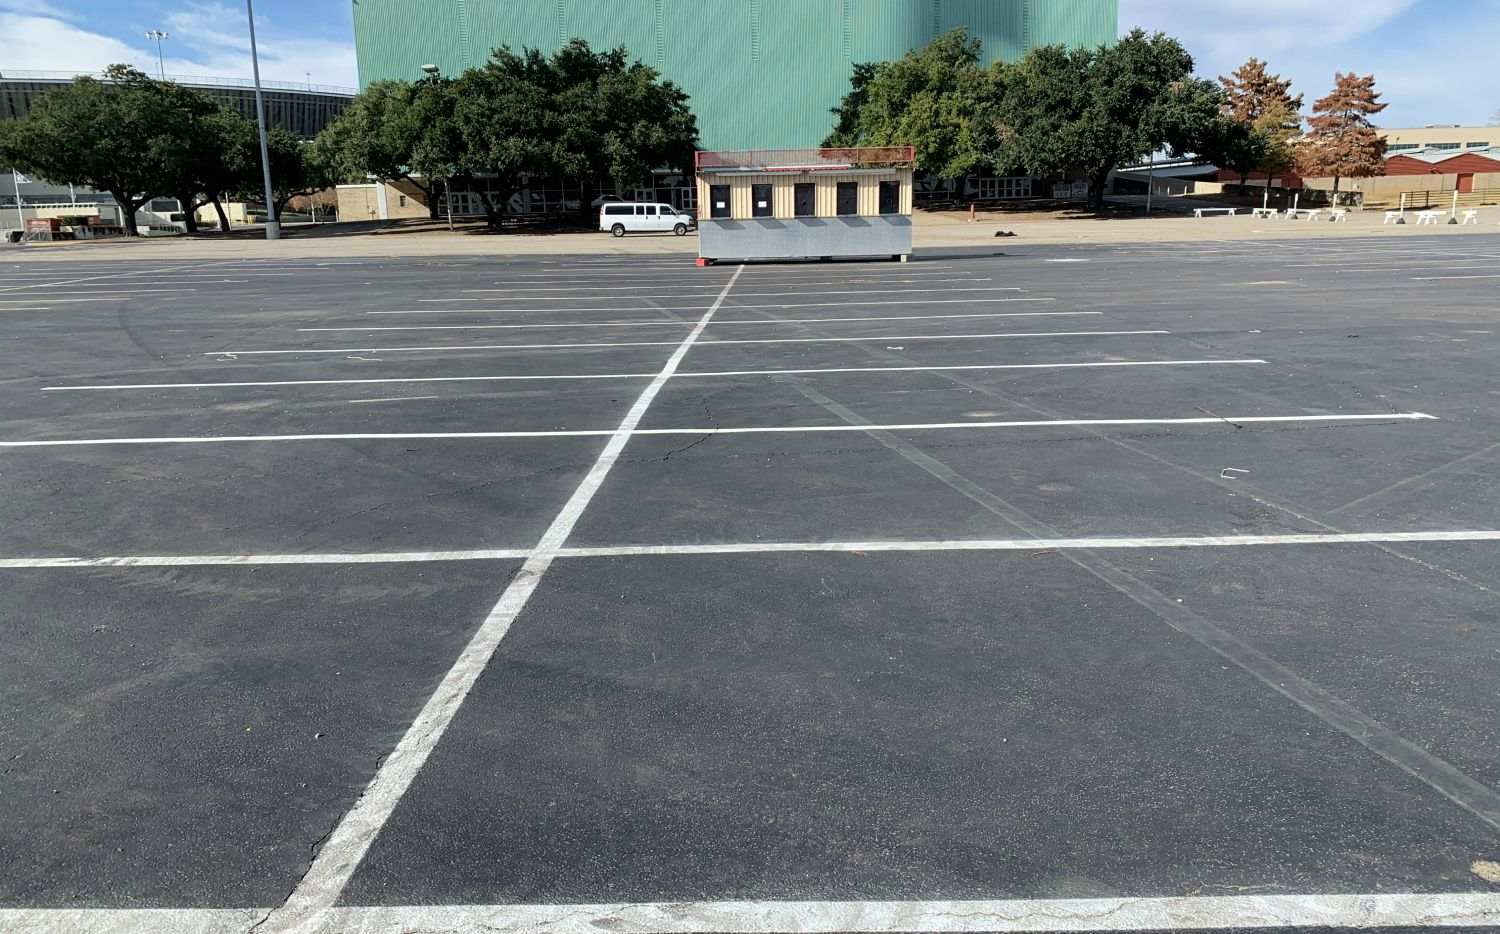 Lots of parking at Fair Park. Just not a lot of park.